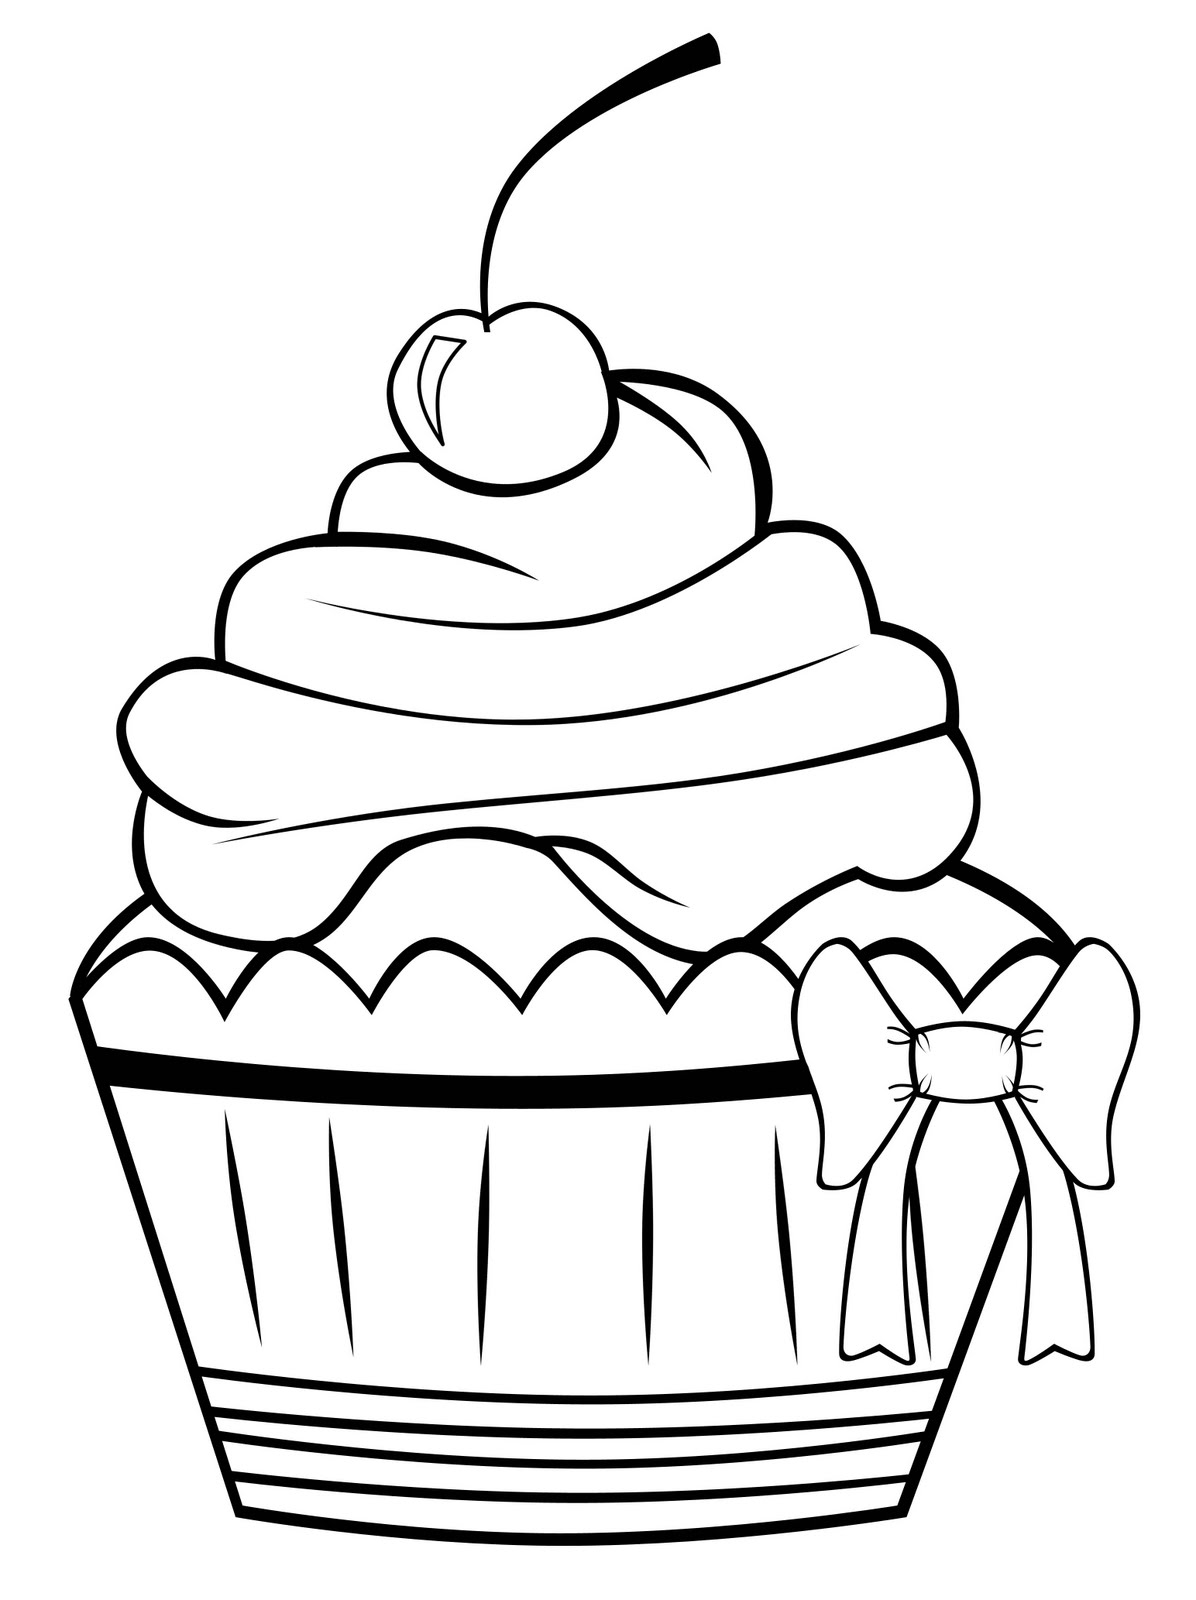 kawaii cupcake coloring pages cupcake coloring contest simply sweet online coloring kawaii cupcake pages